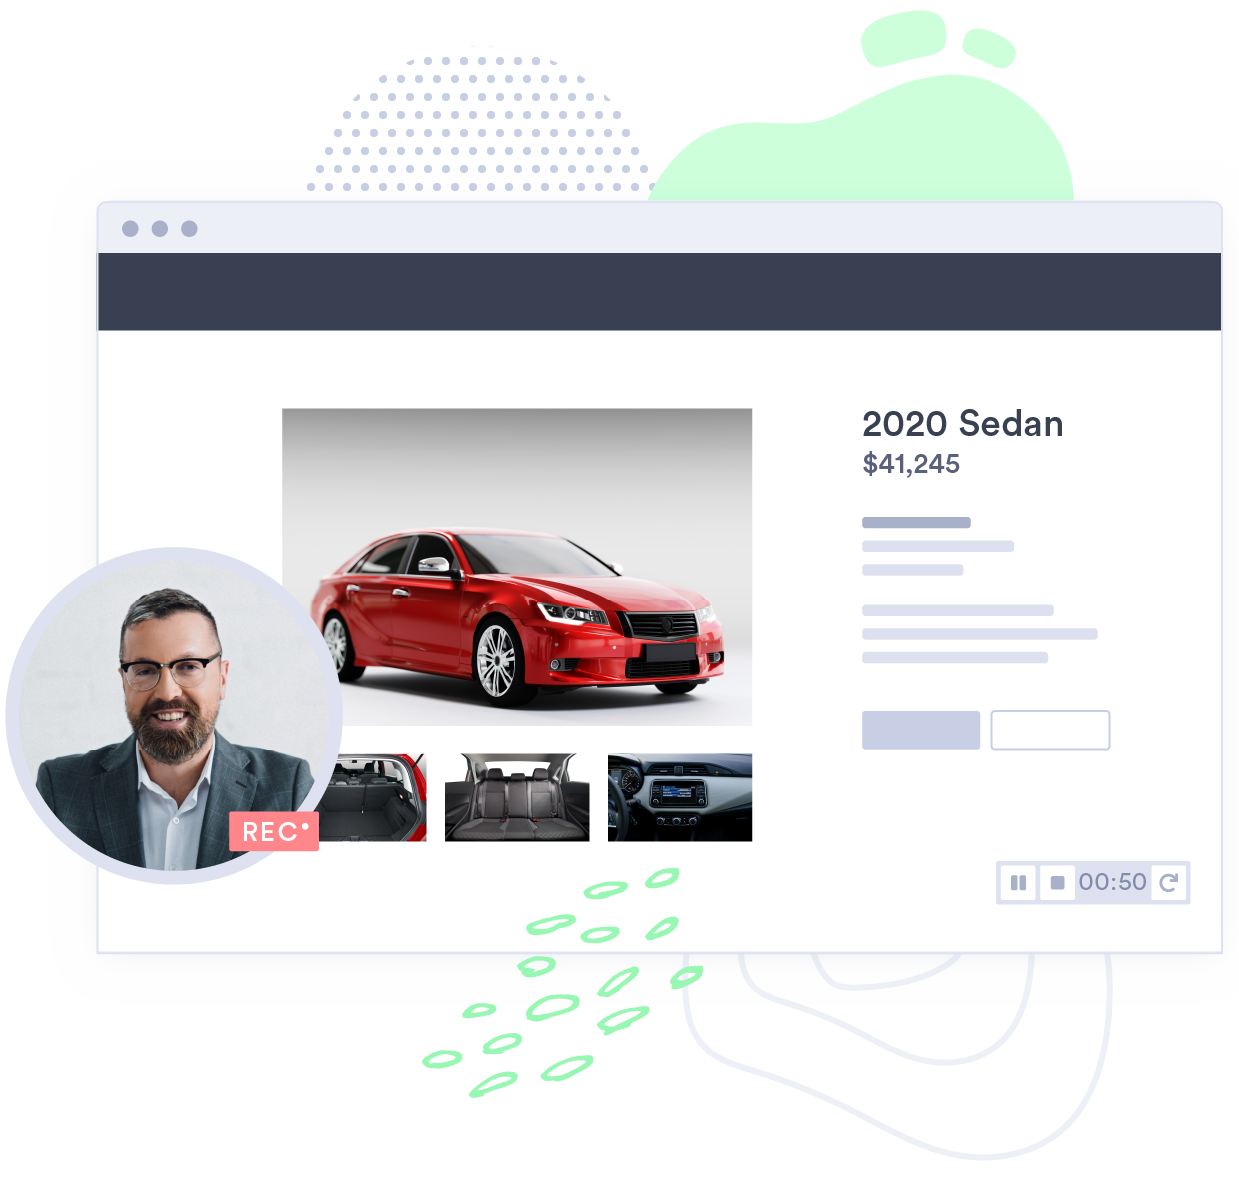 A salesman shares vehicle listings with a client through a personalized video.